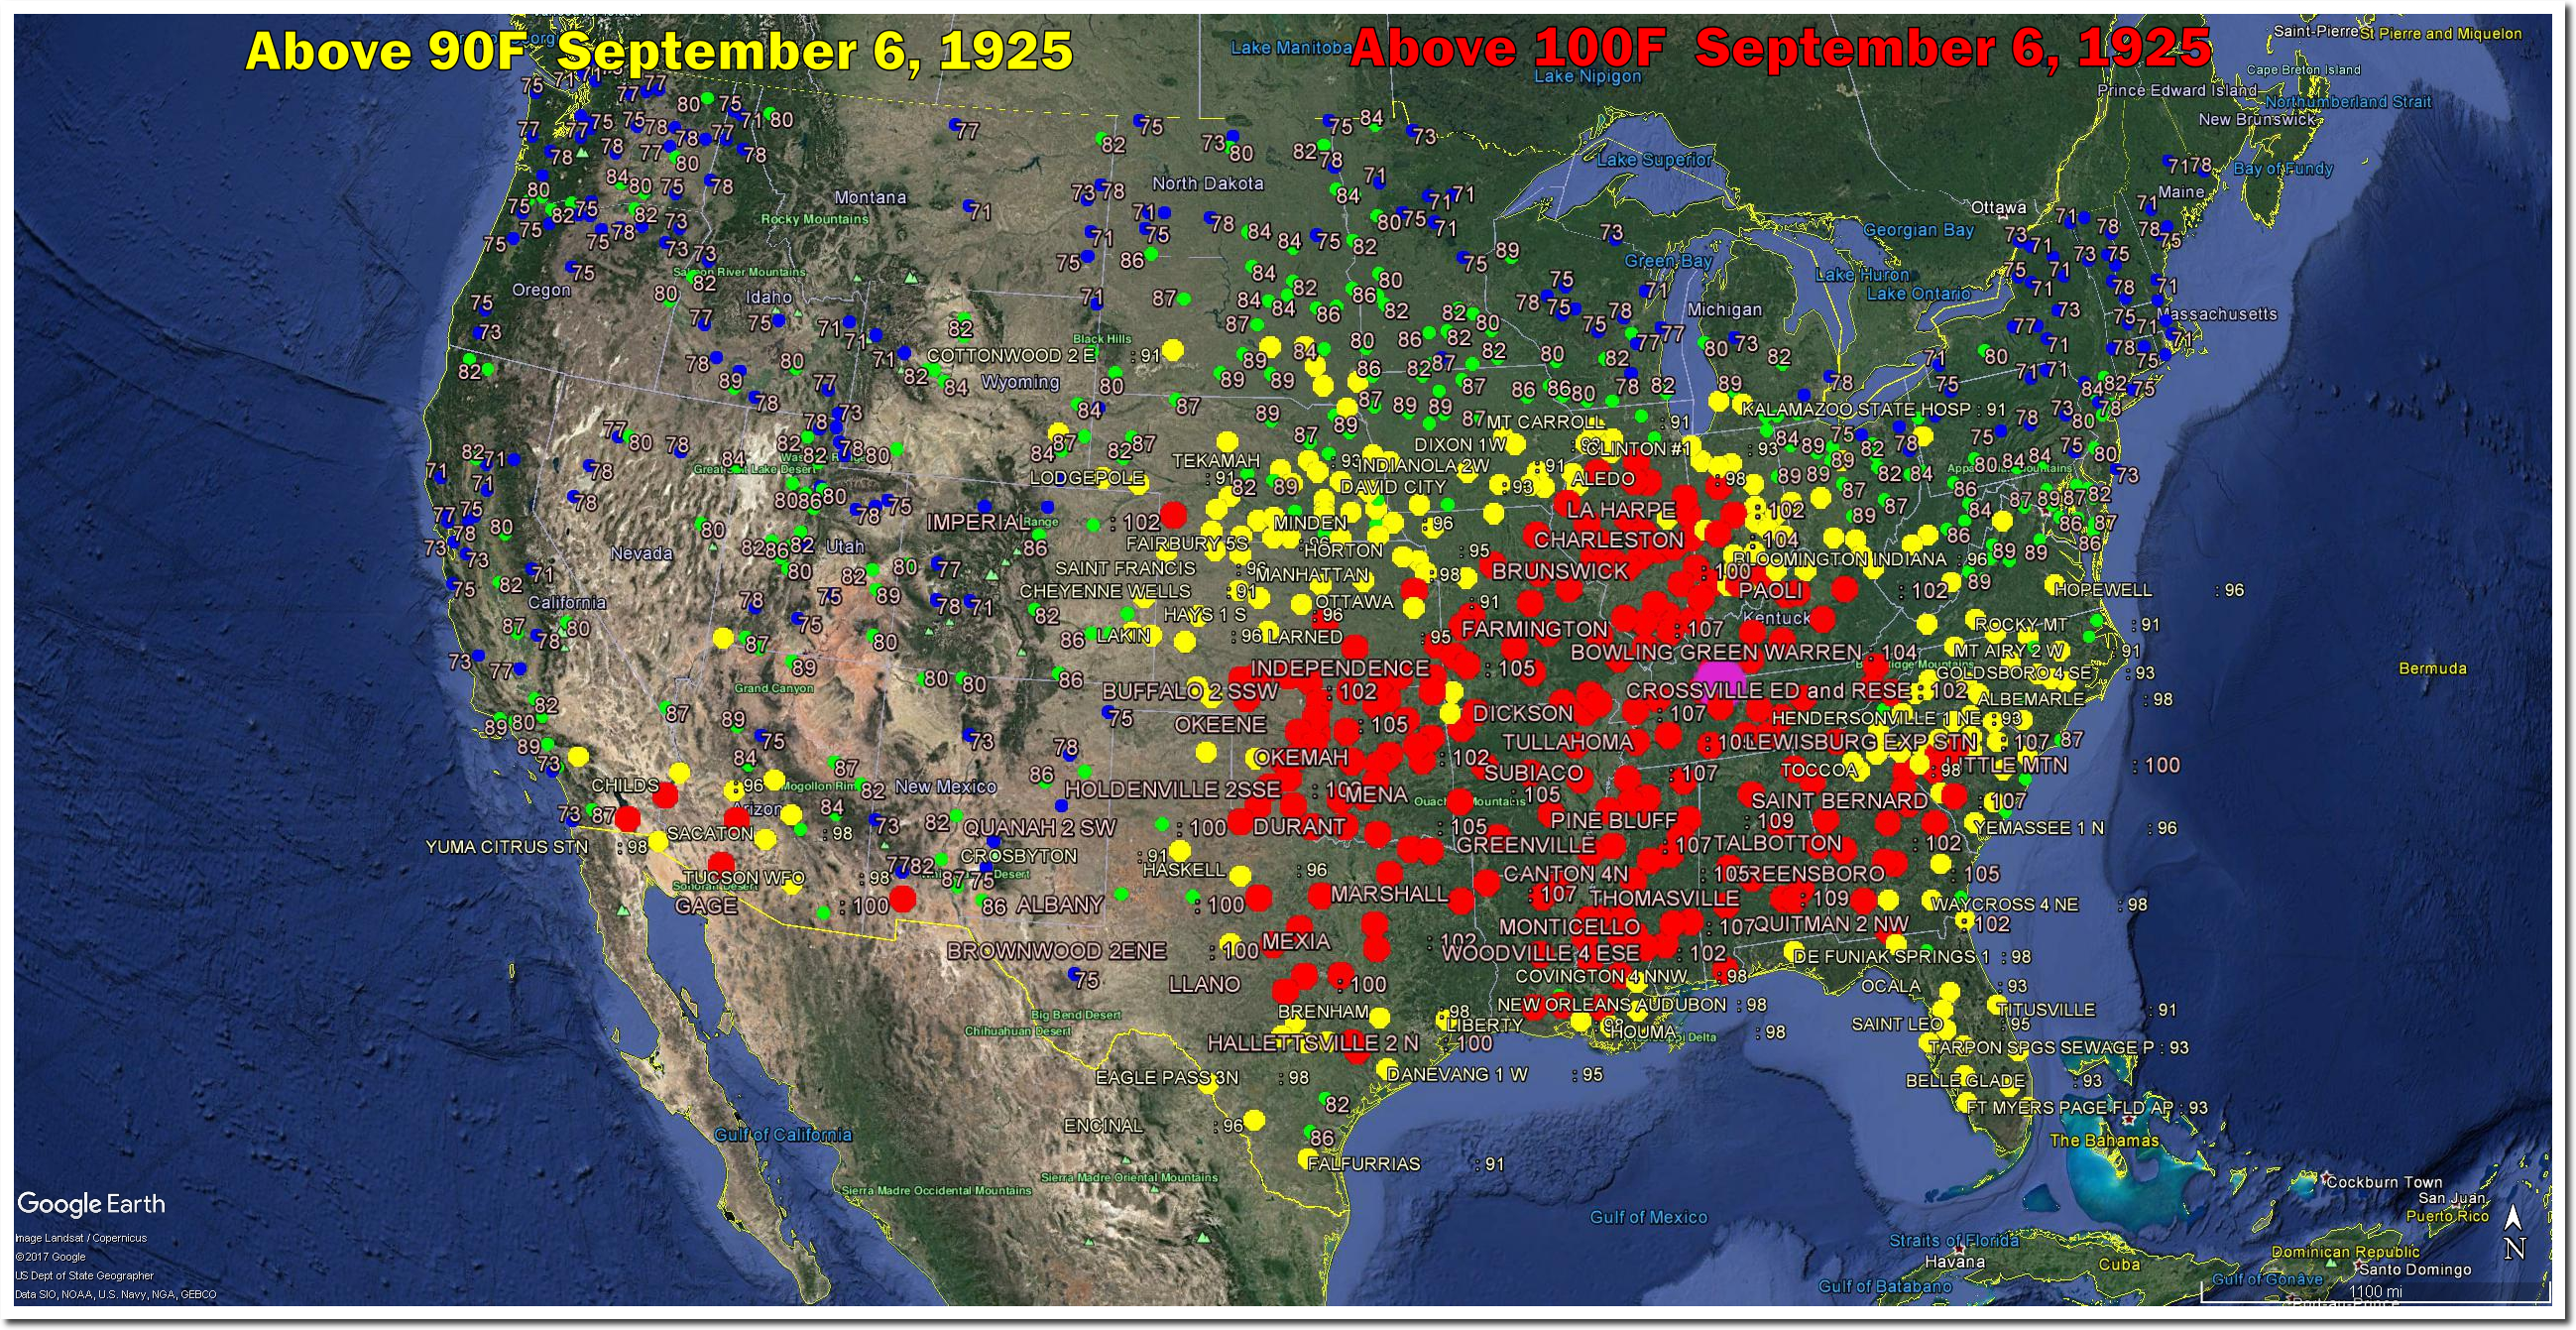 Plummeting September Temperatures In The US The Deplorable - Google earth map of southeast us